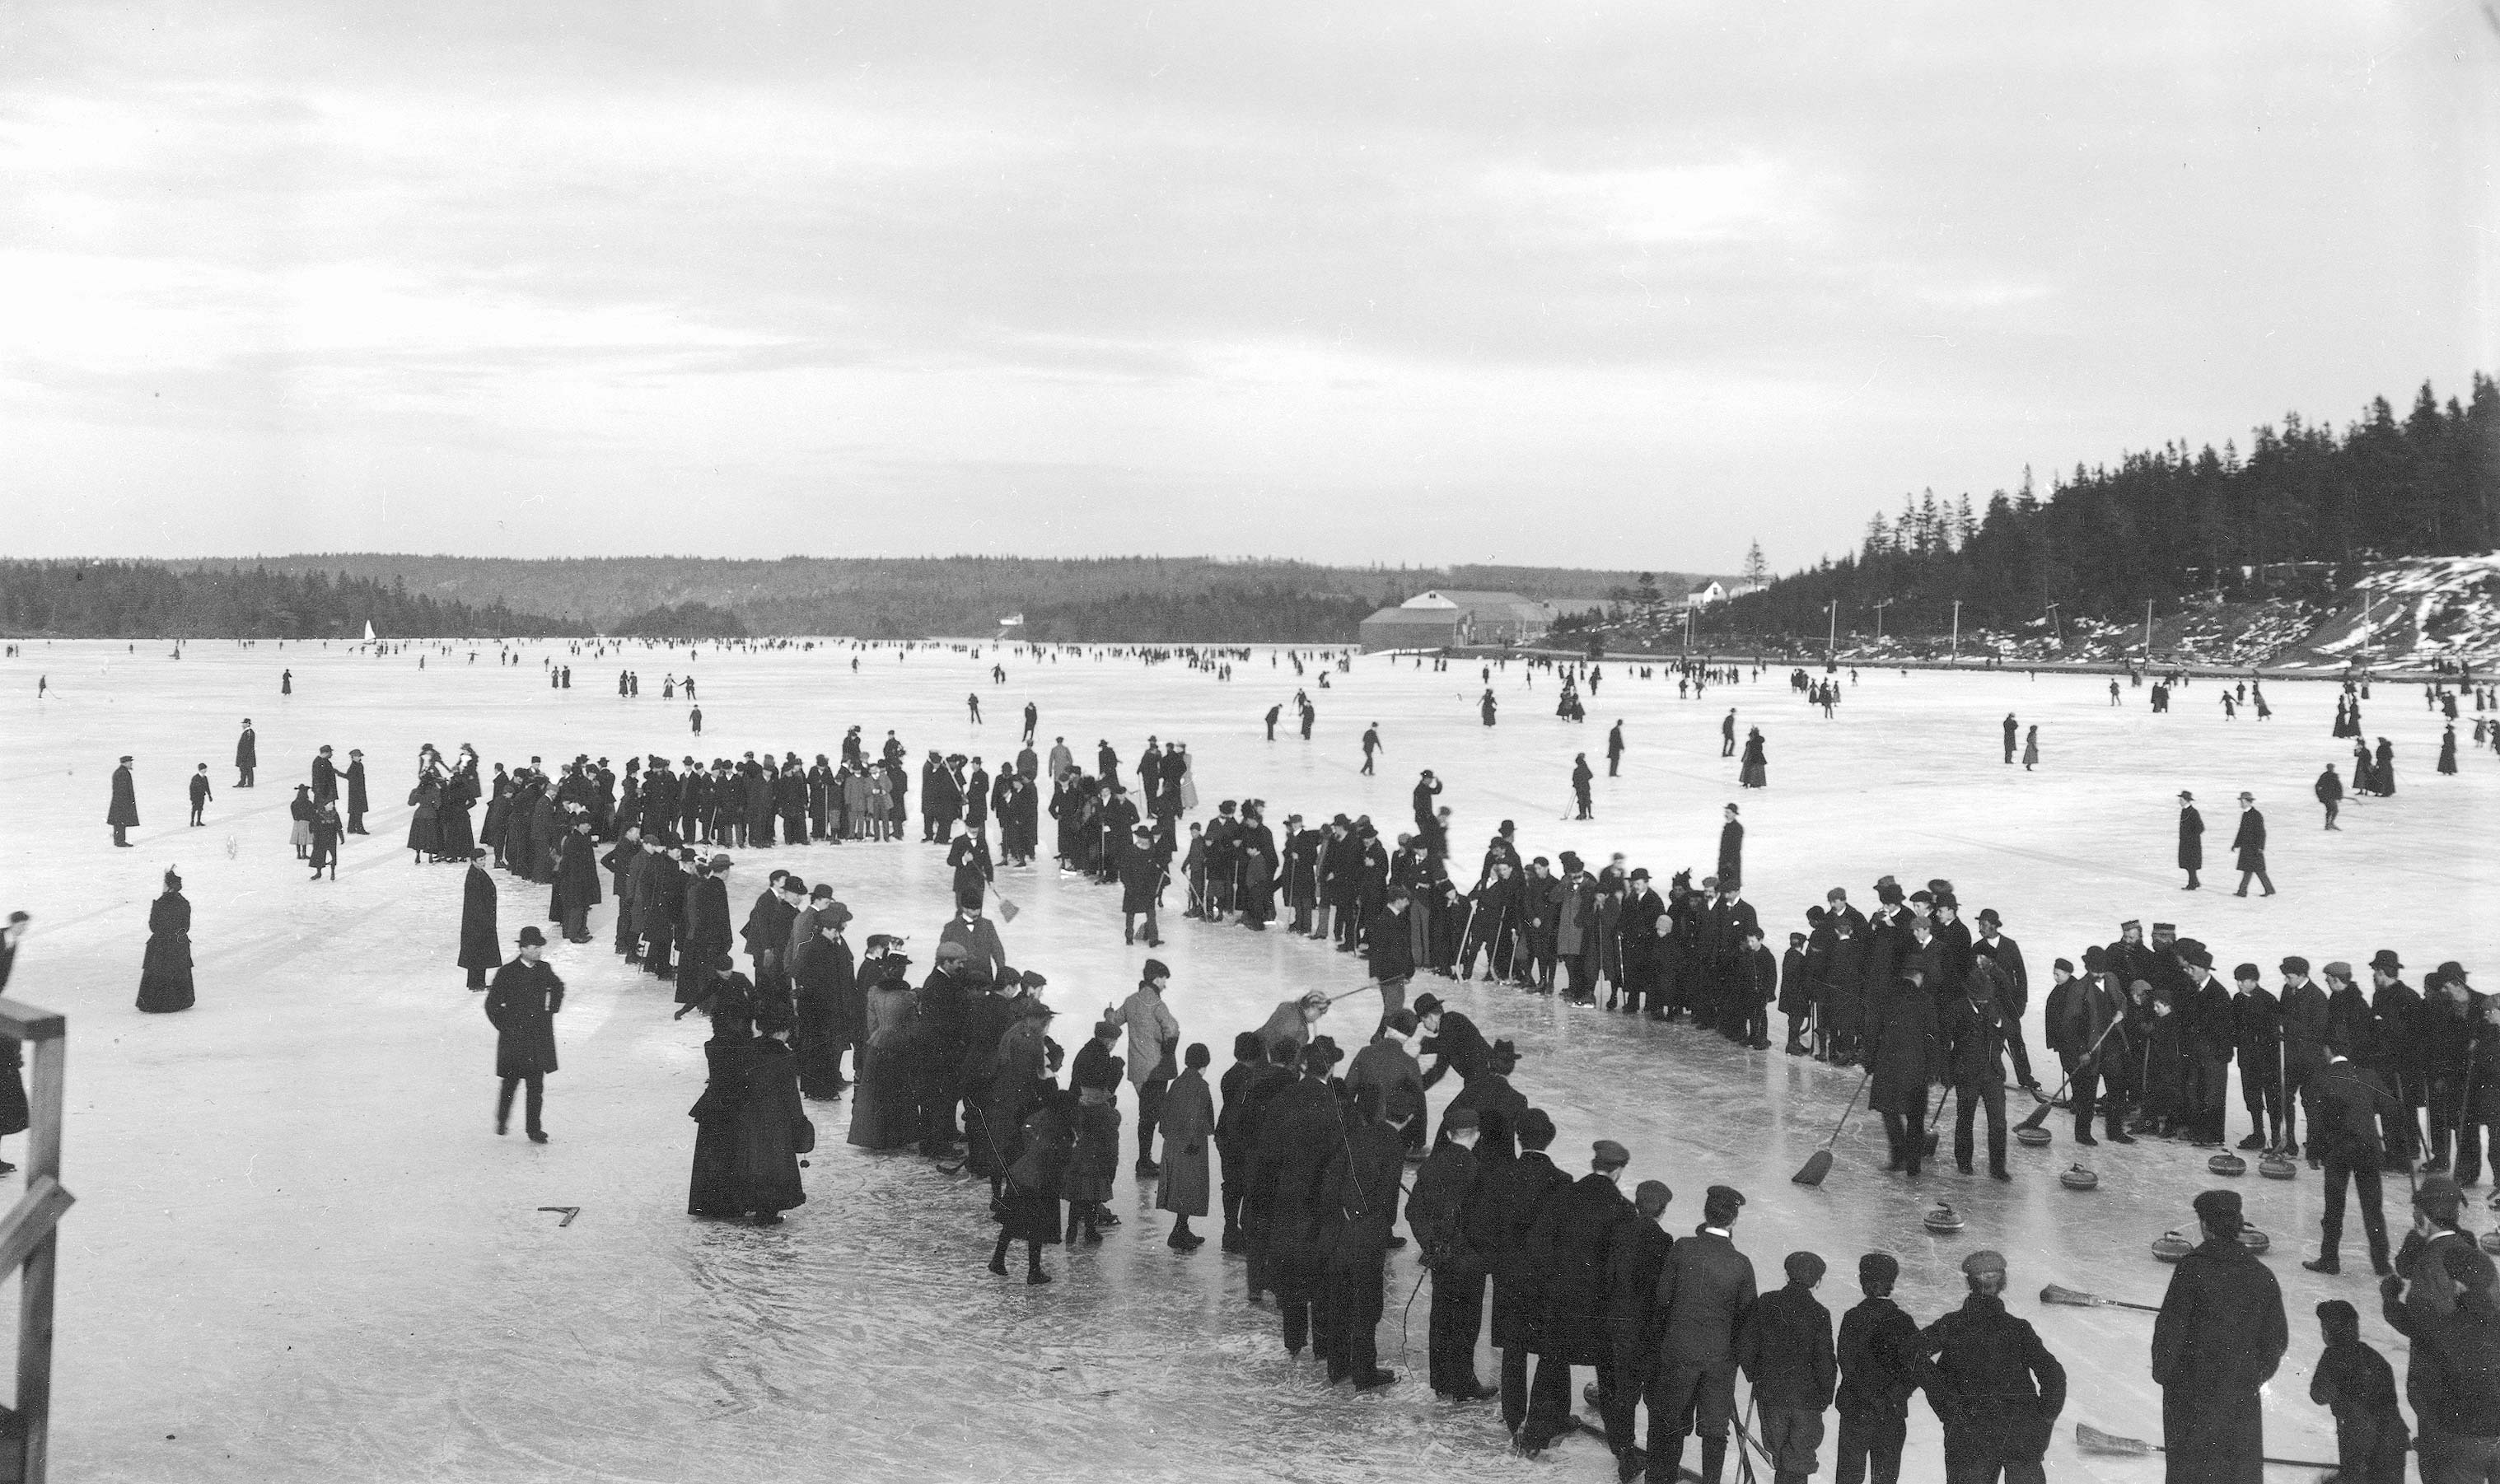 People line a curling rink on a frozen lake. People skate and play in the snow in the background.